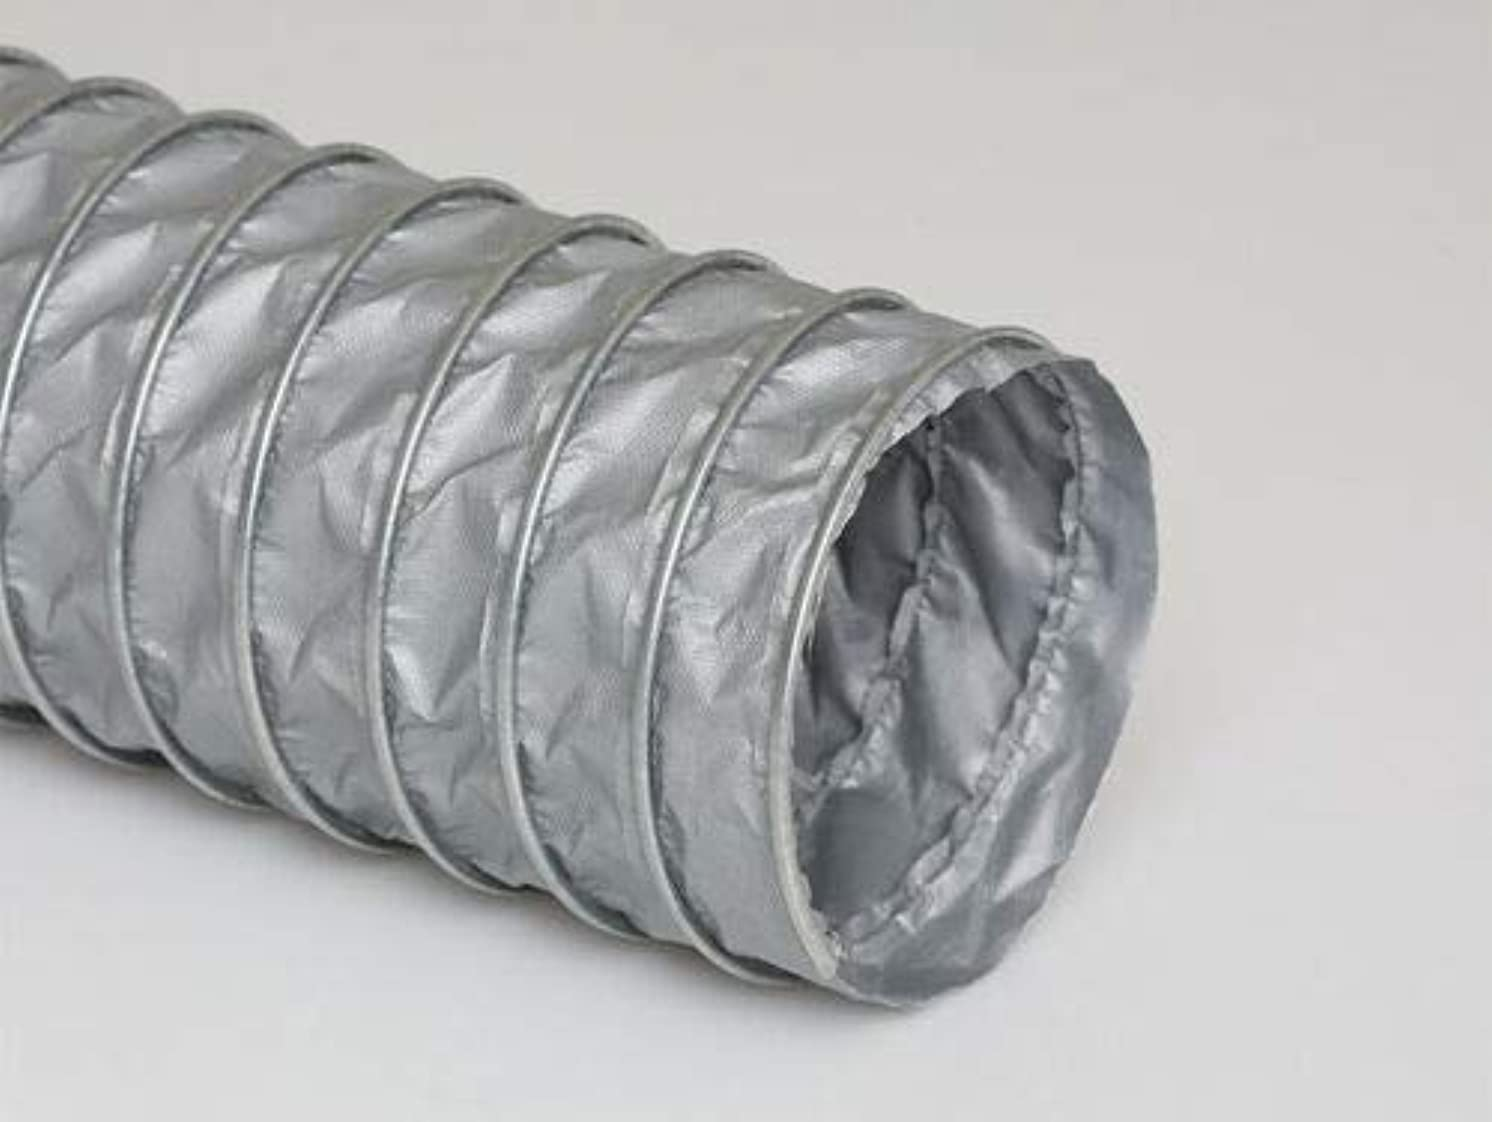 Steel Wire Reinforced Compressible Welding Fume Extraction Silicone Coated Flexible Hose, 8